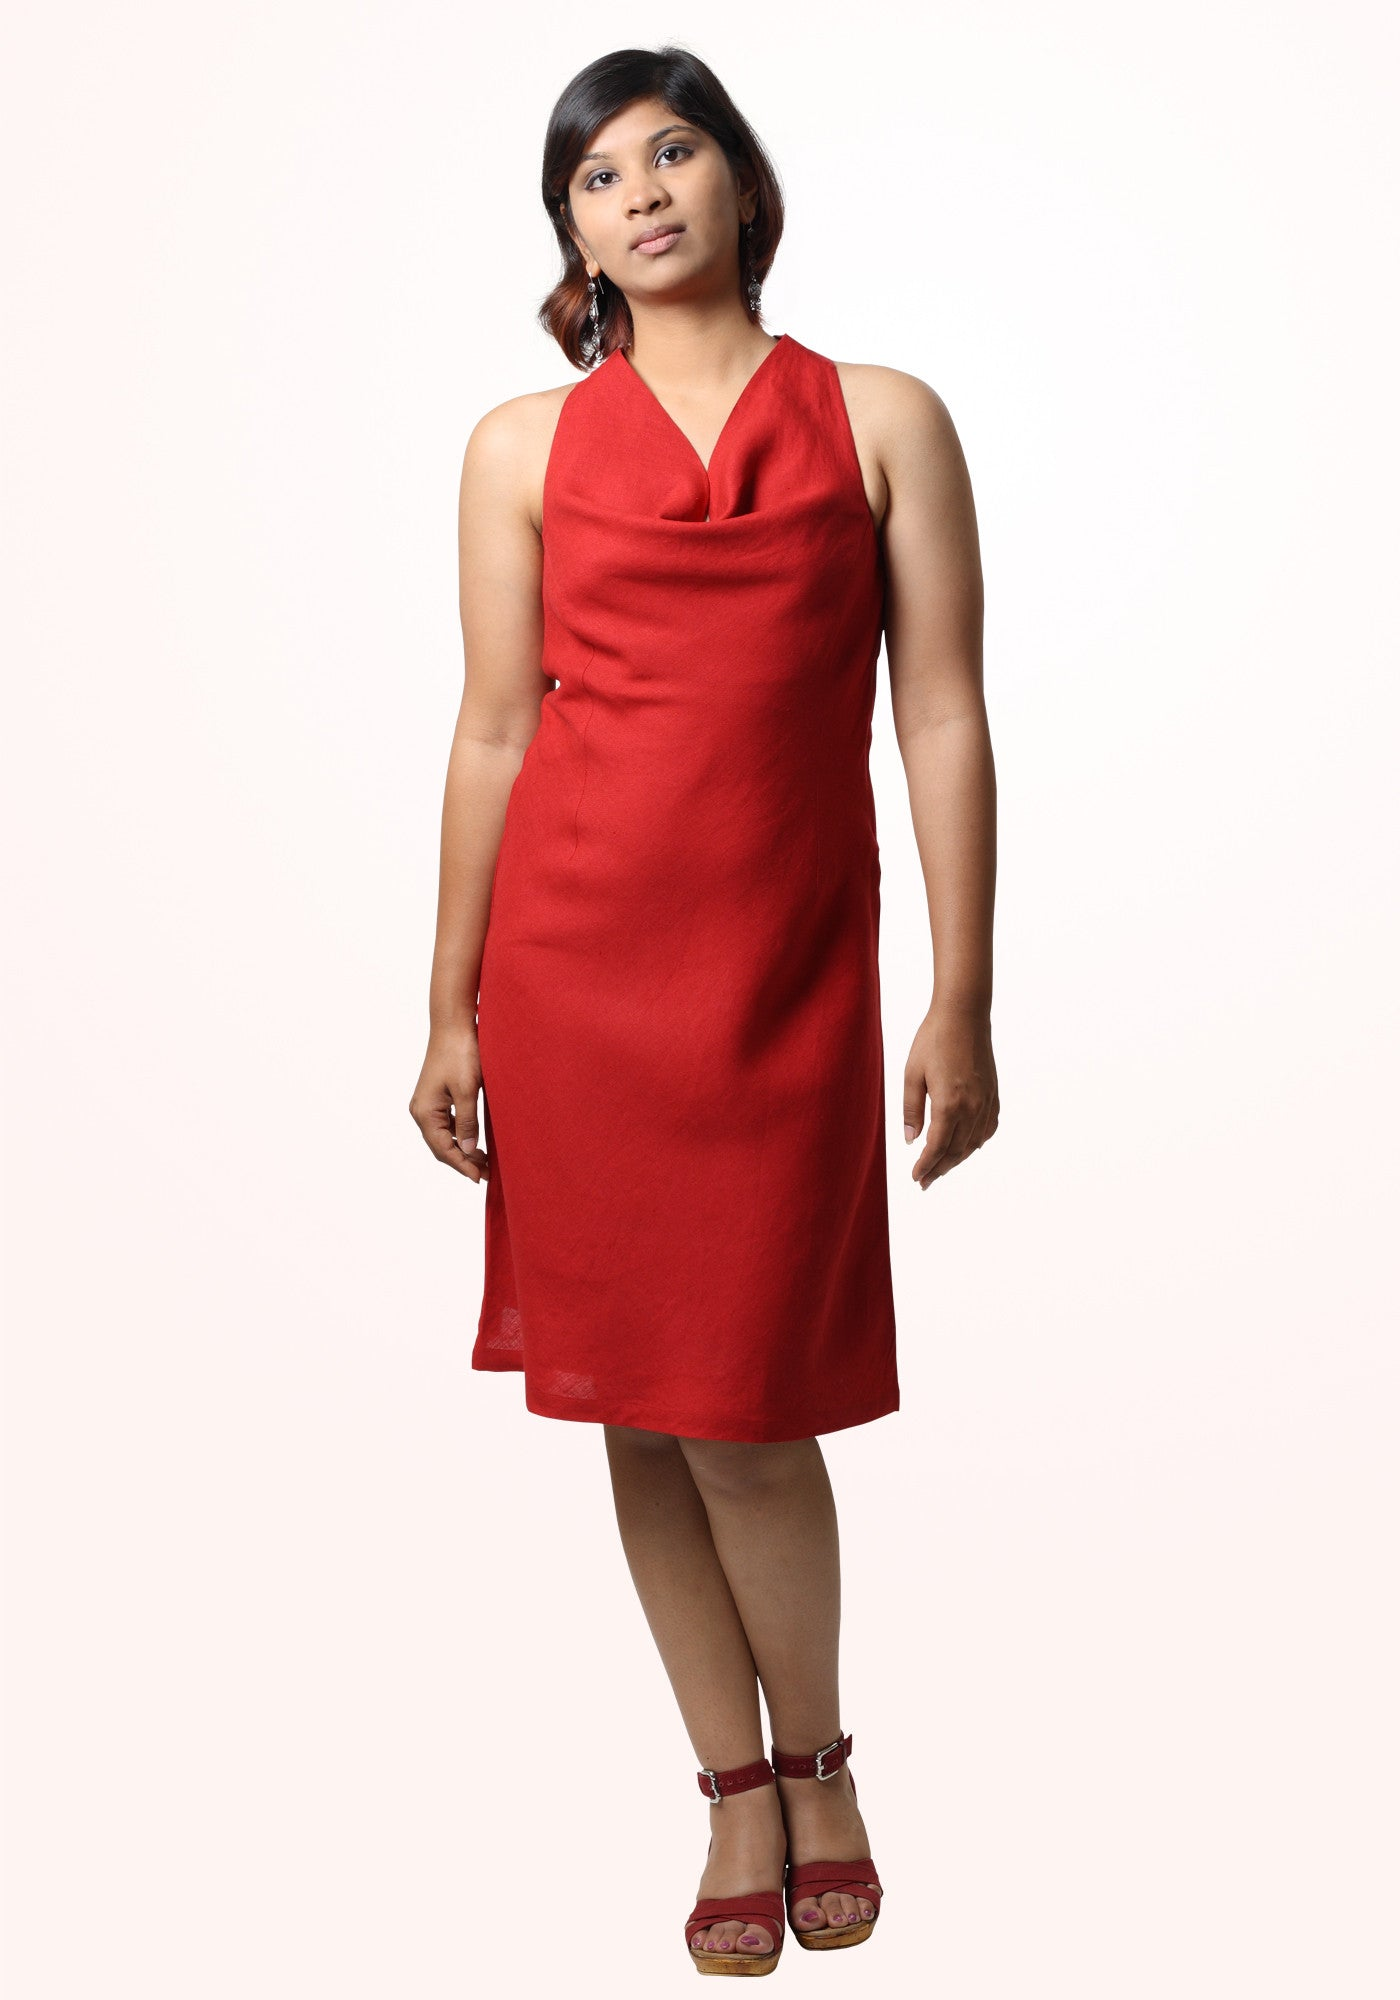 Ruby Halter Cowl Dress In Red Linen - MINC ecofashion